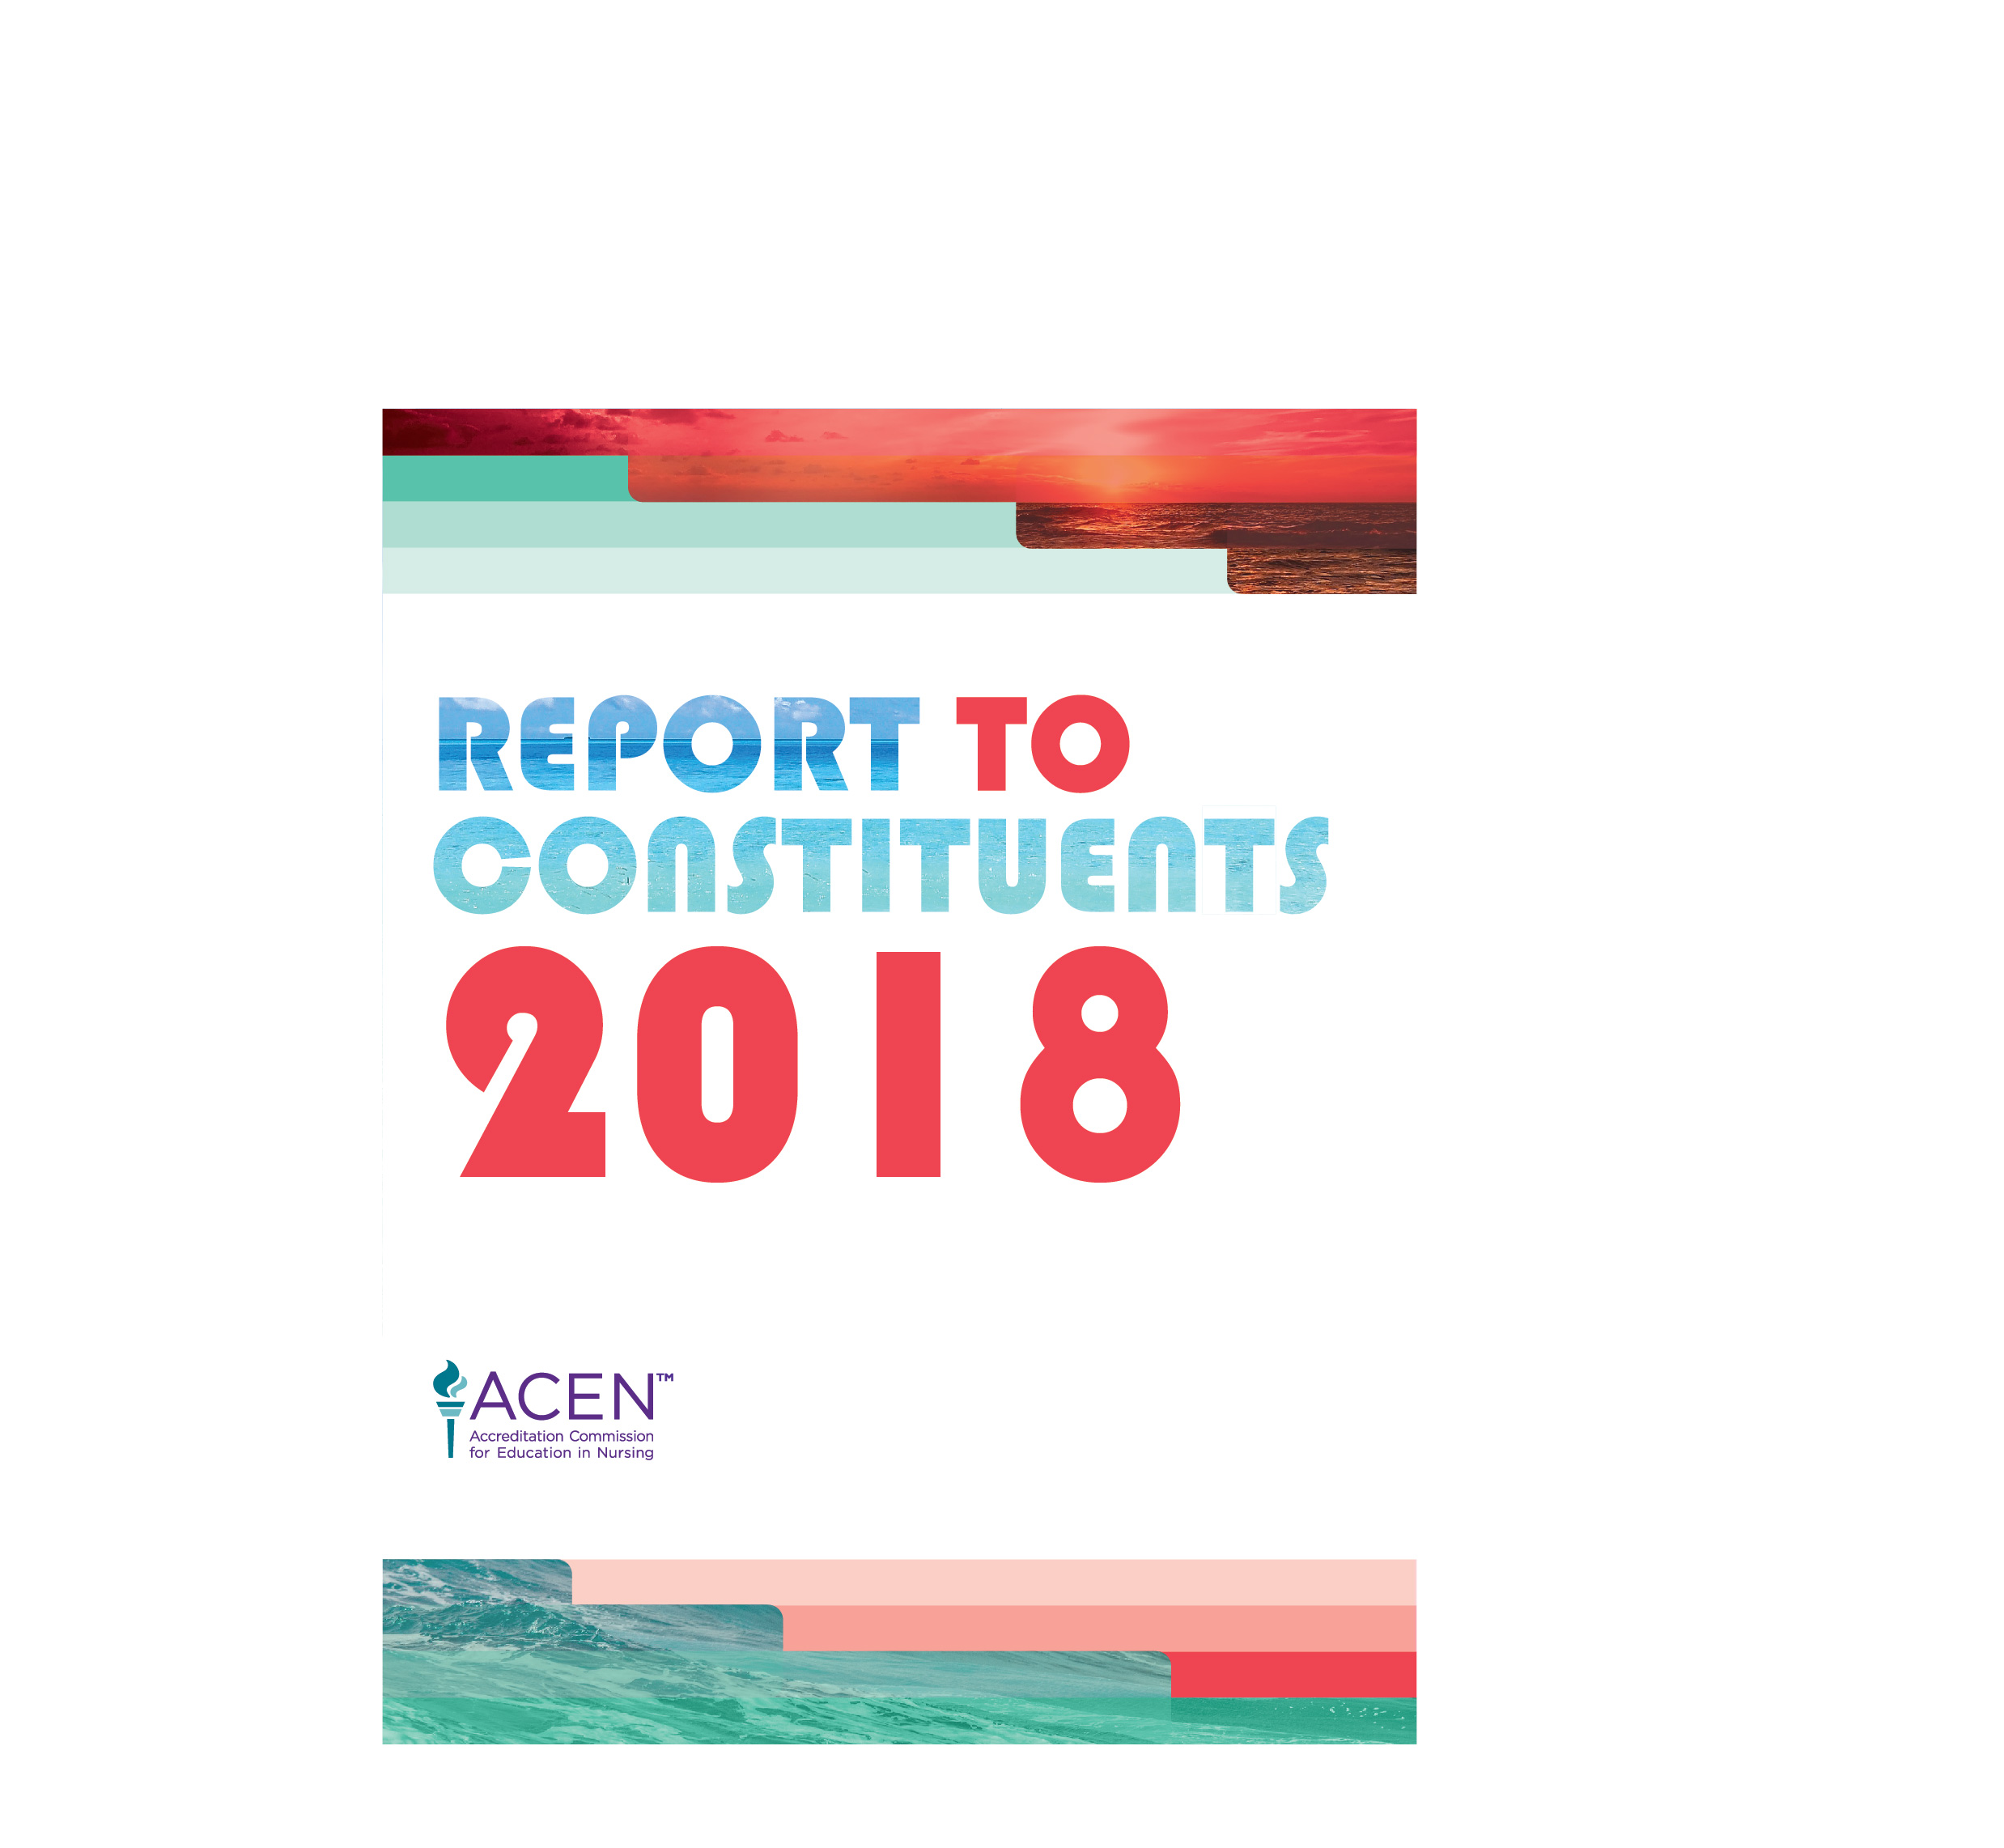 2018 Report to Constituents